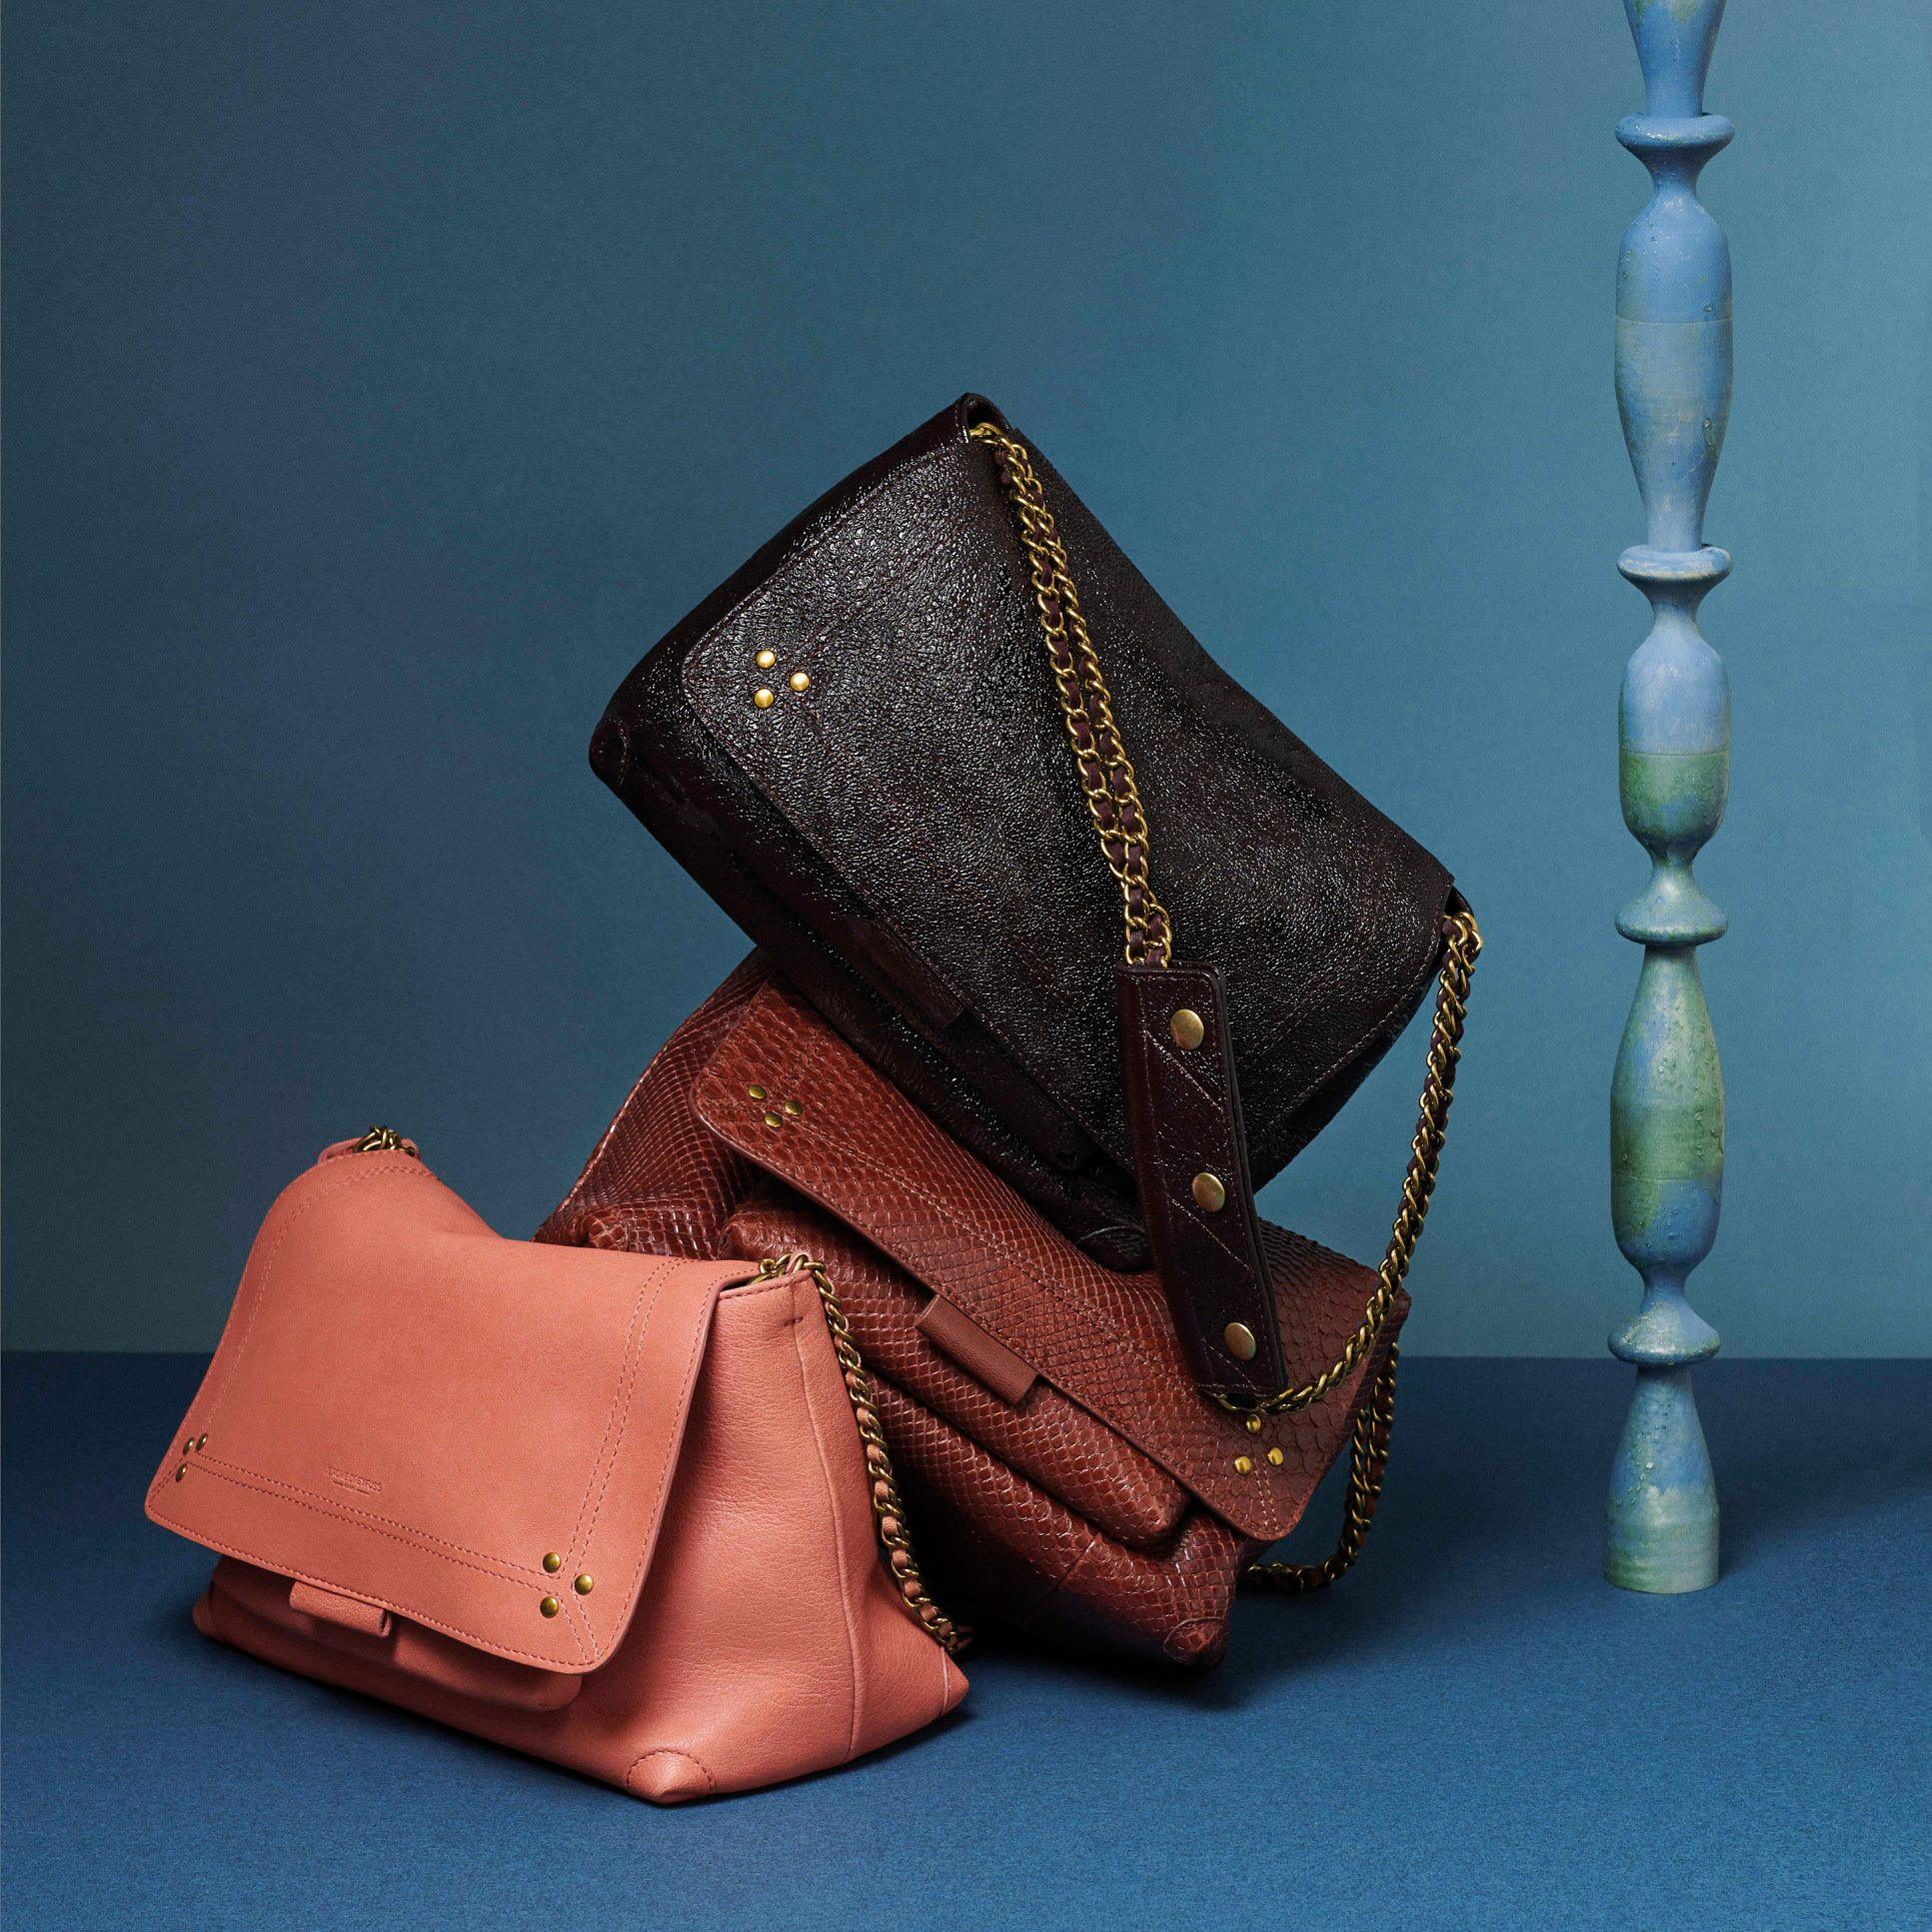 Gorgeous leather bags from Jerome Dreyfuss